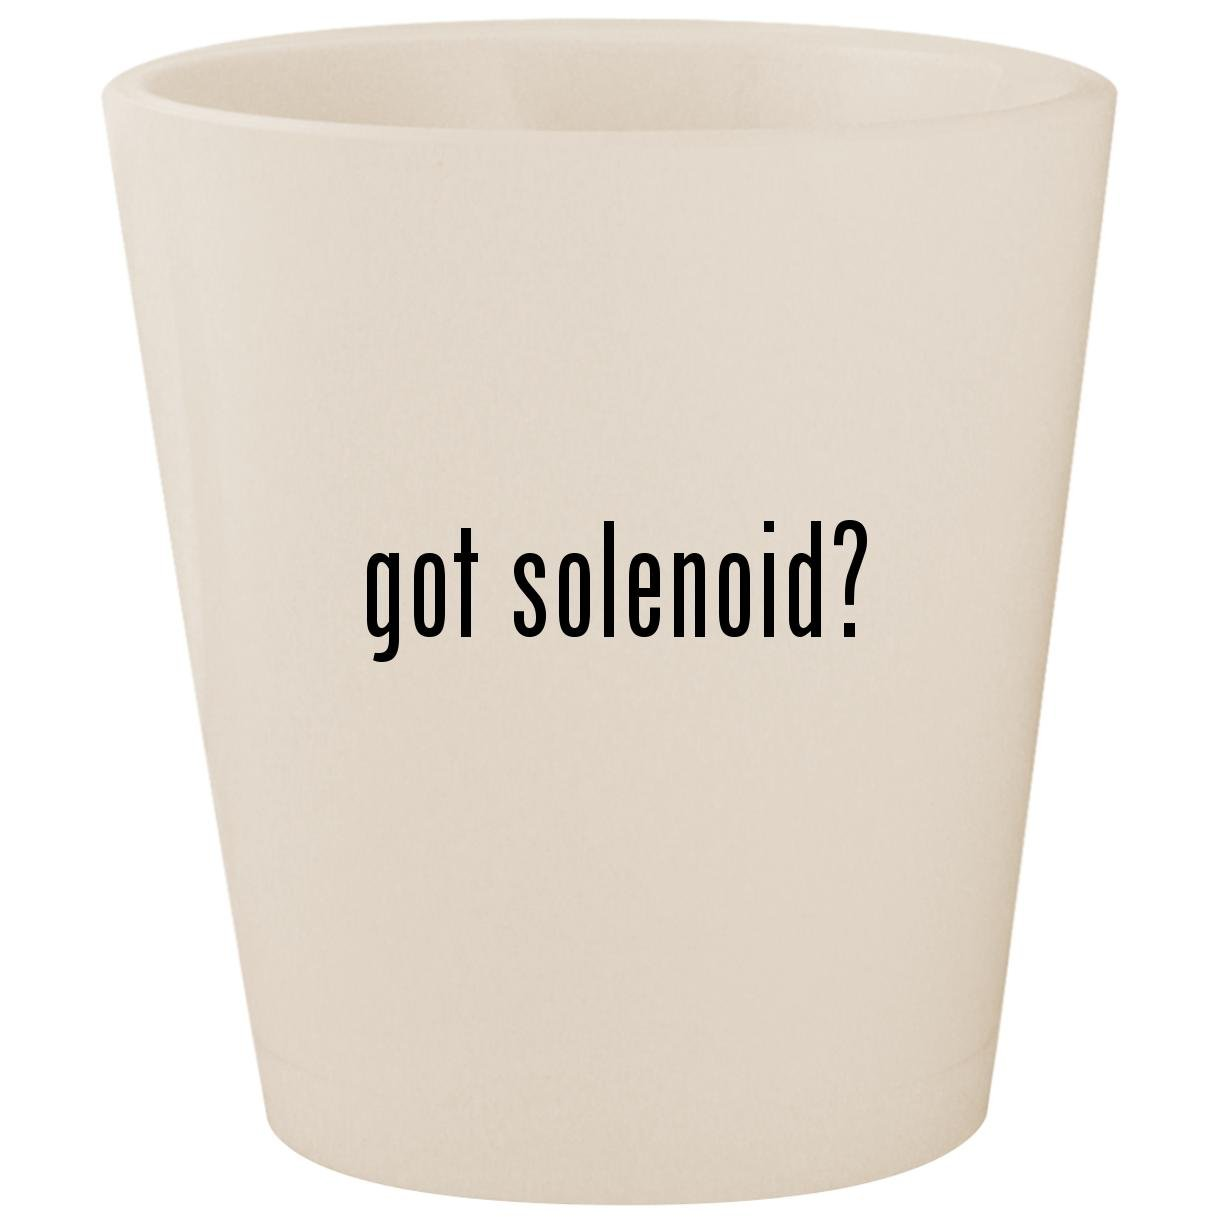 got solenoid? - White Ceramic 1.5oz Shot Glass